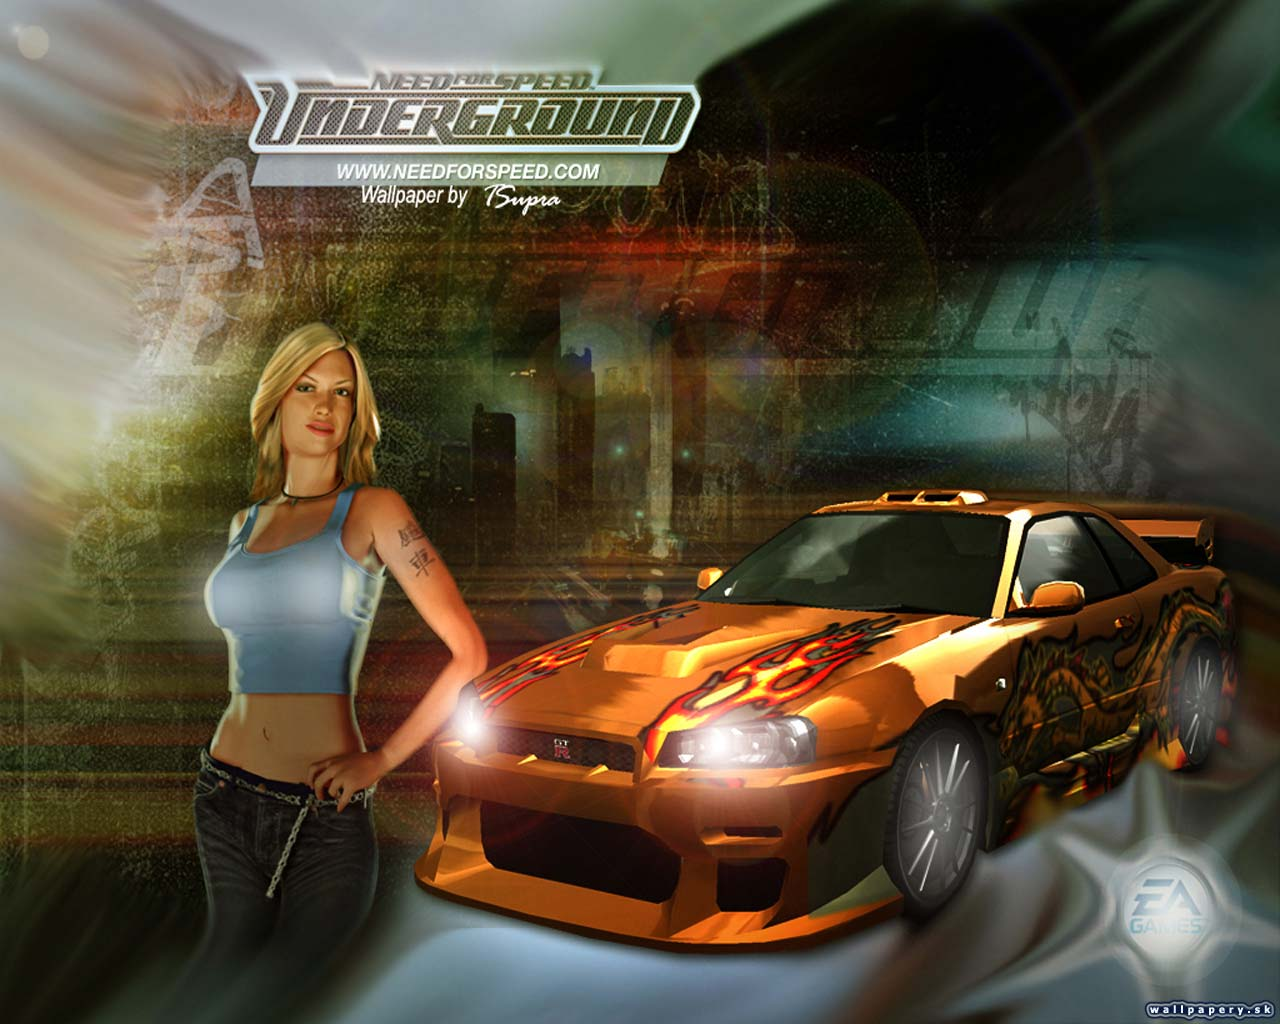 Need for speed underground 2 porn animes exposed tube